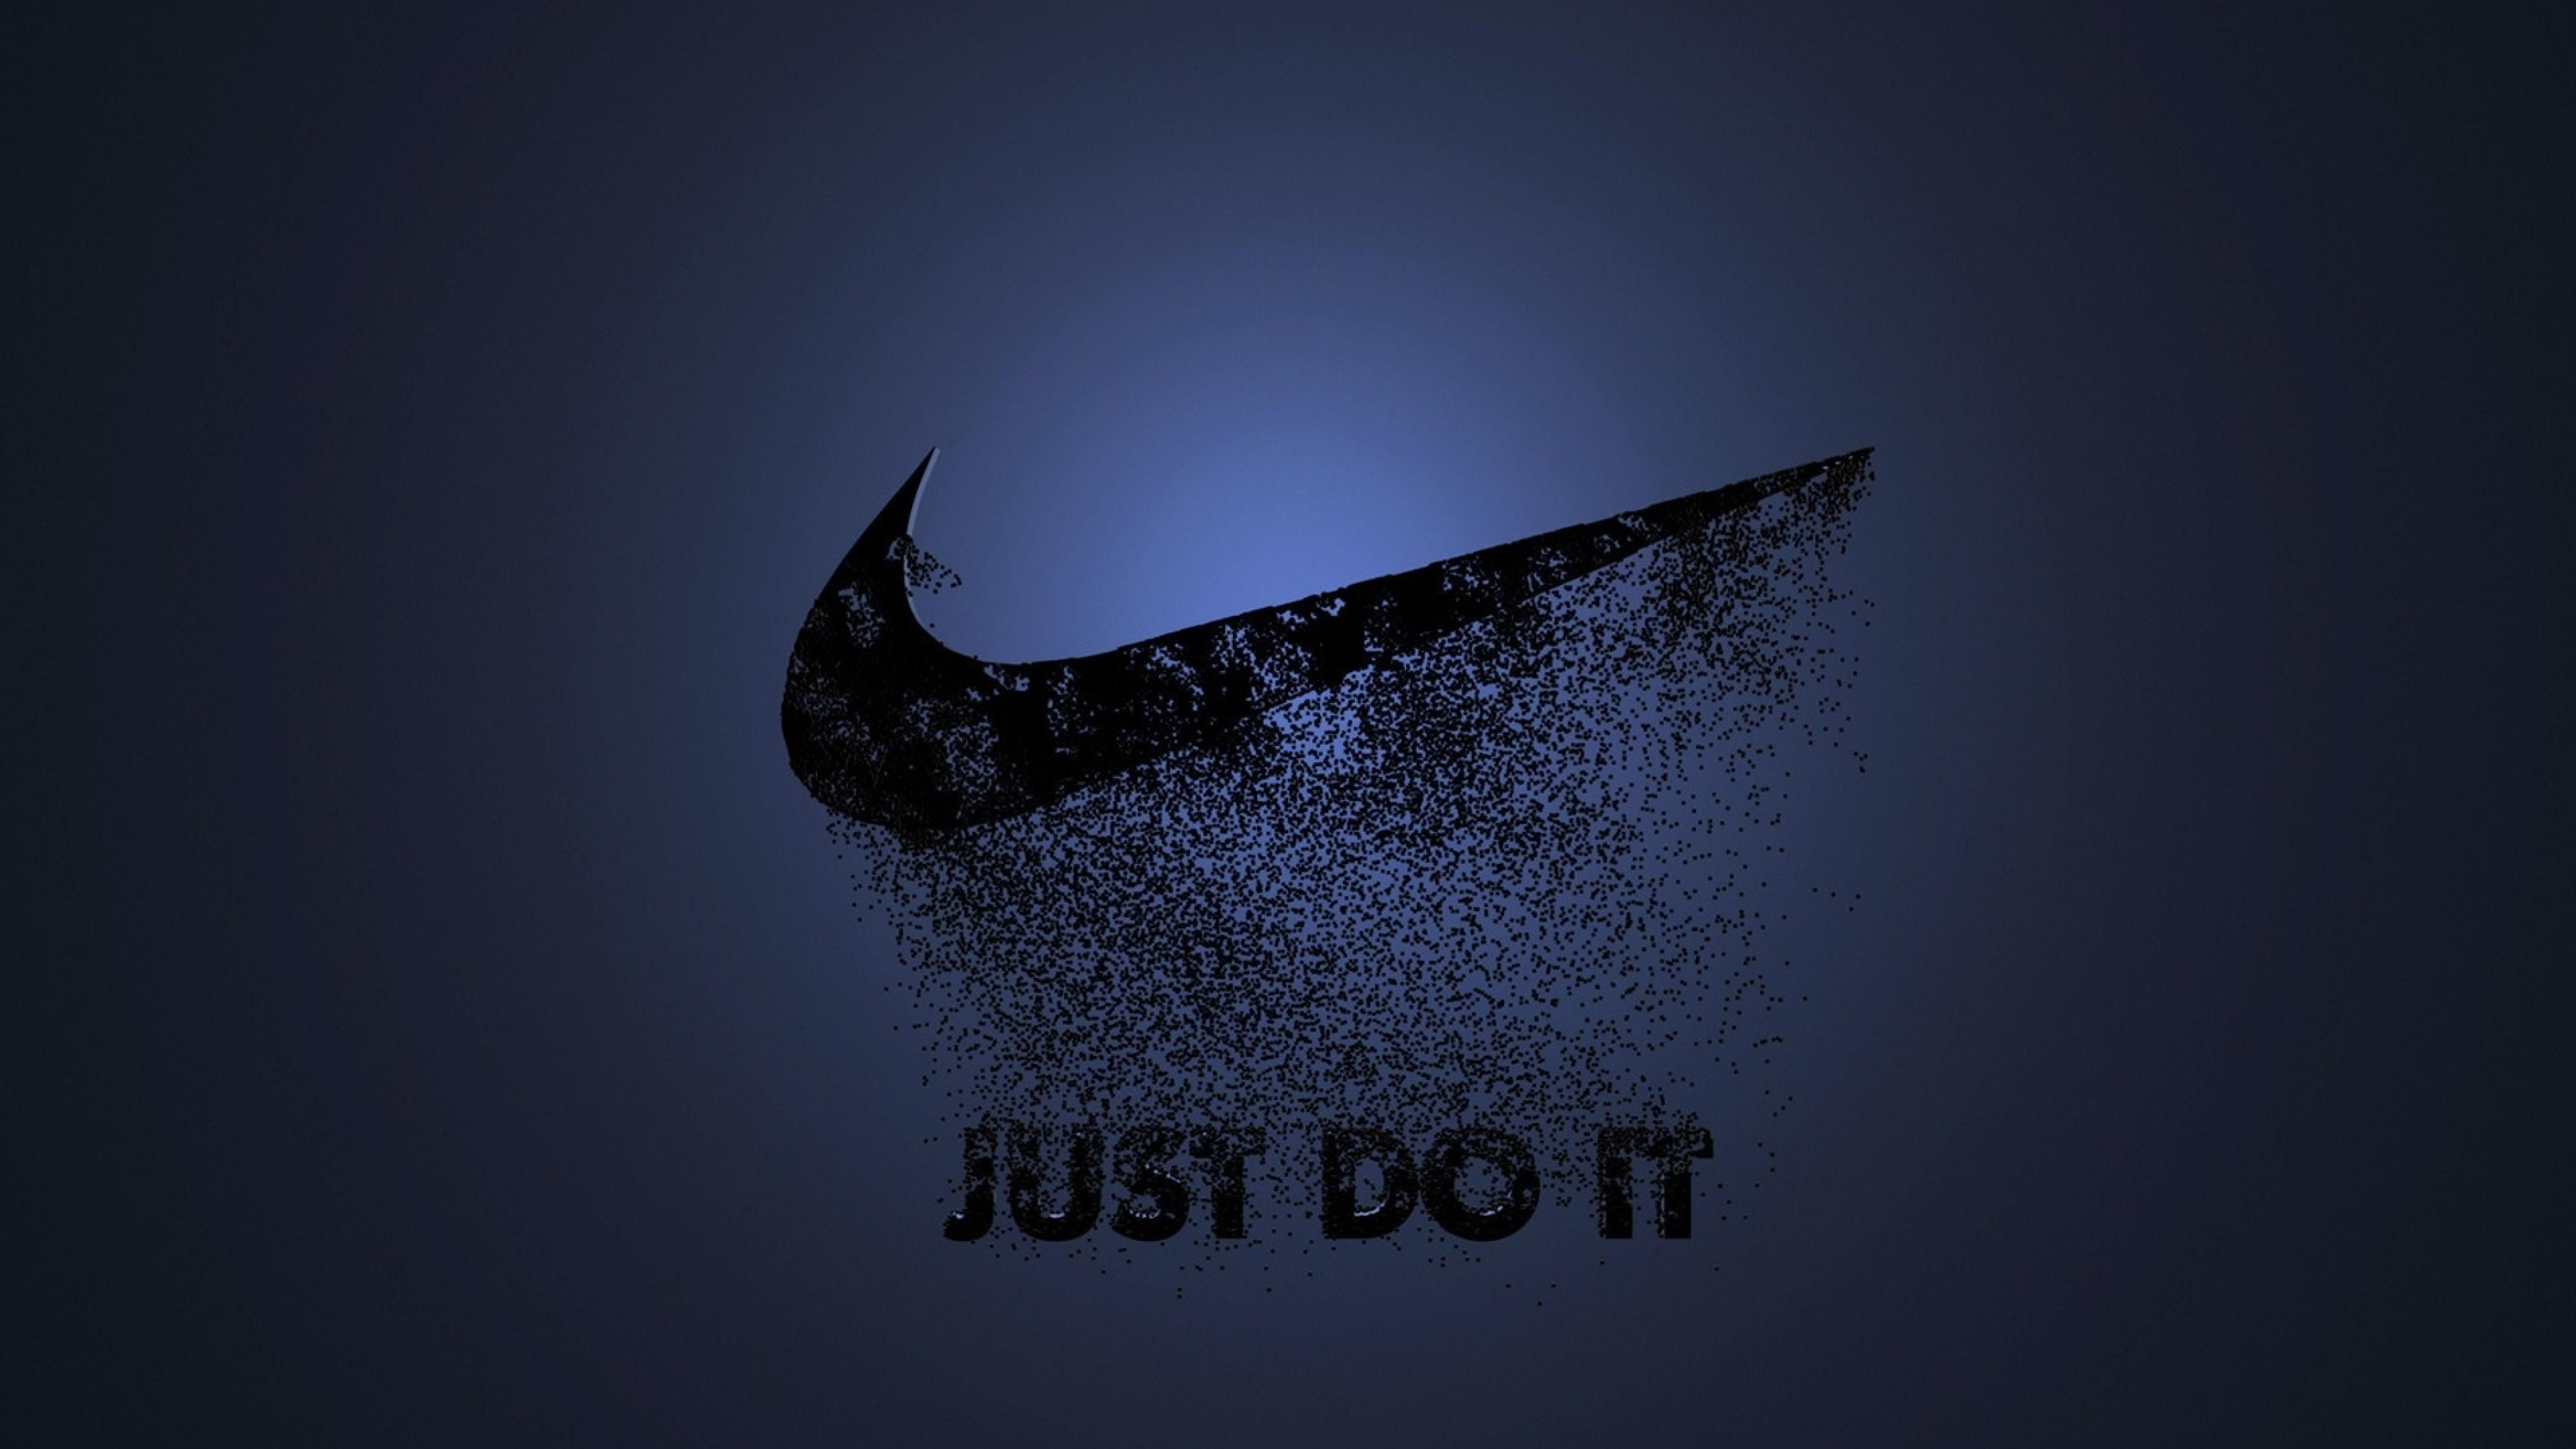 Res: 3840x2160, Nike Just Do It Wallpaper High Quality Resolution #38k